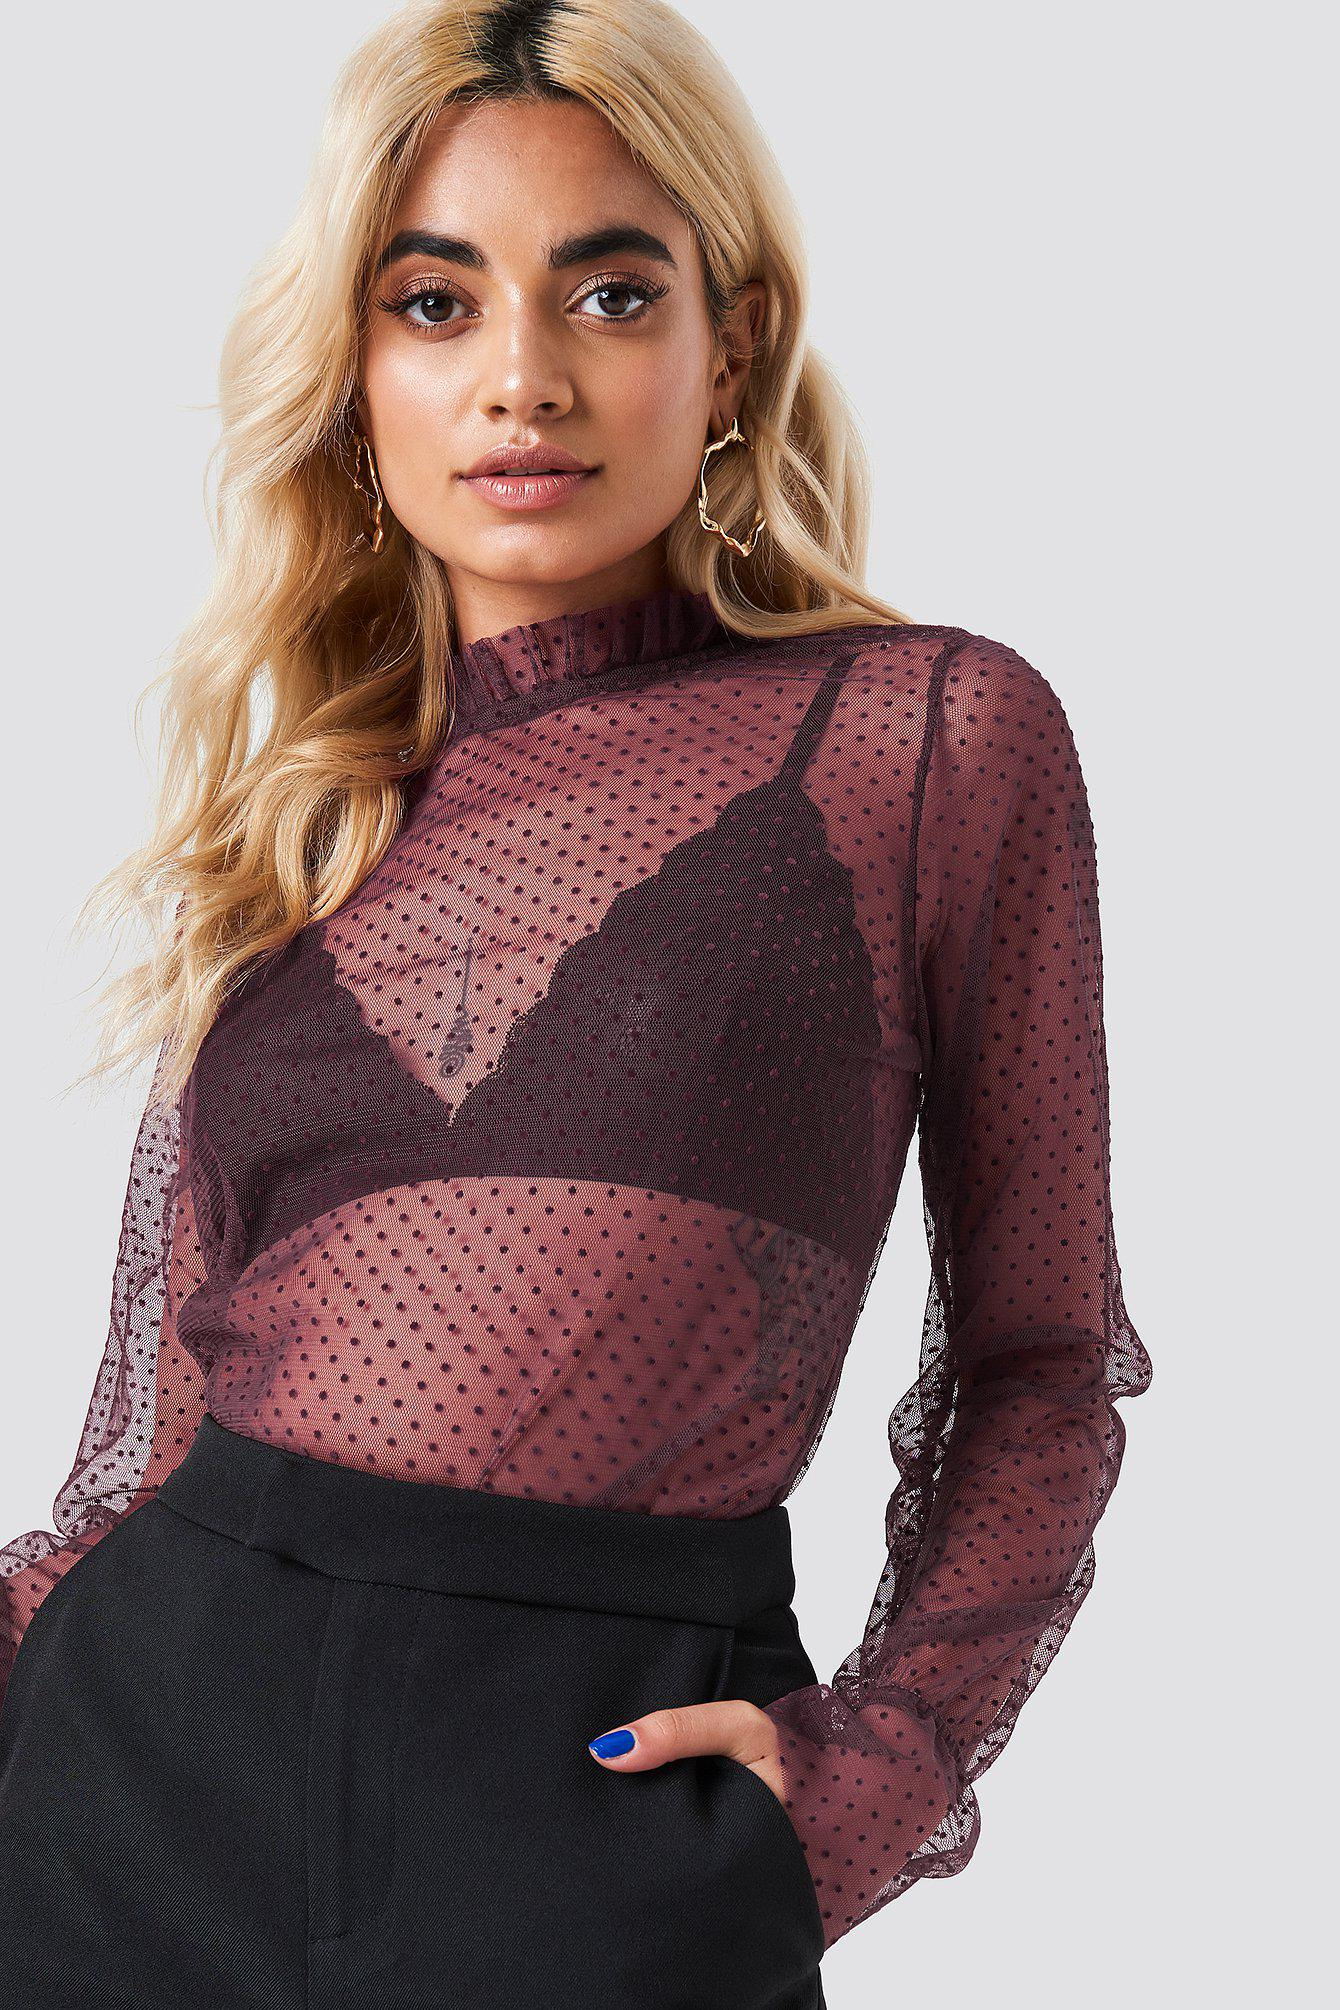 dd3b95314706f NA-KD Dotted Mesh Long Sleeve Top Wine Red in Red - Save 61% - Lyst